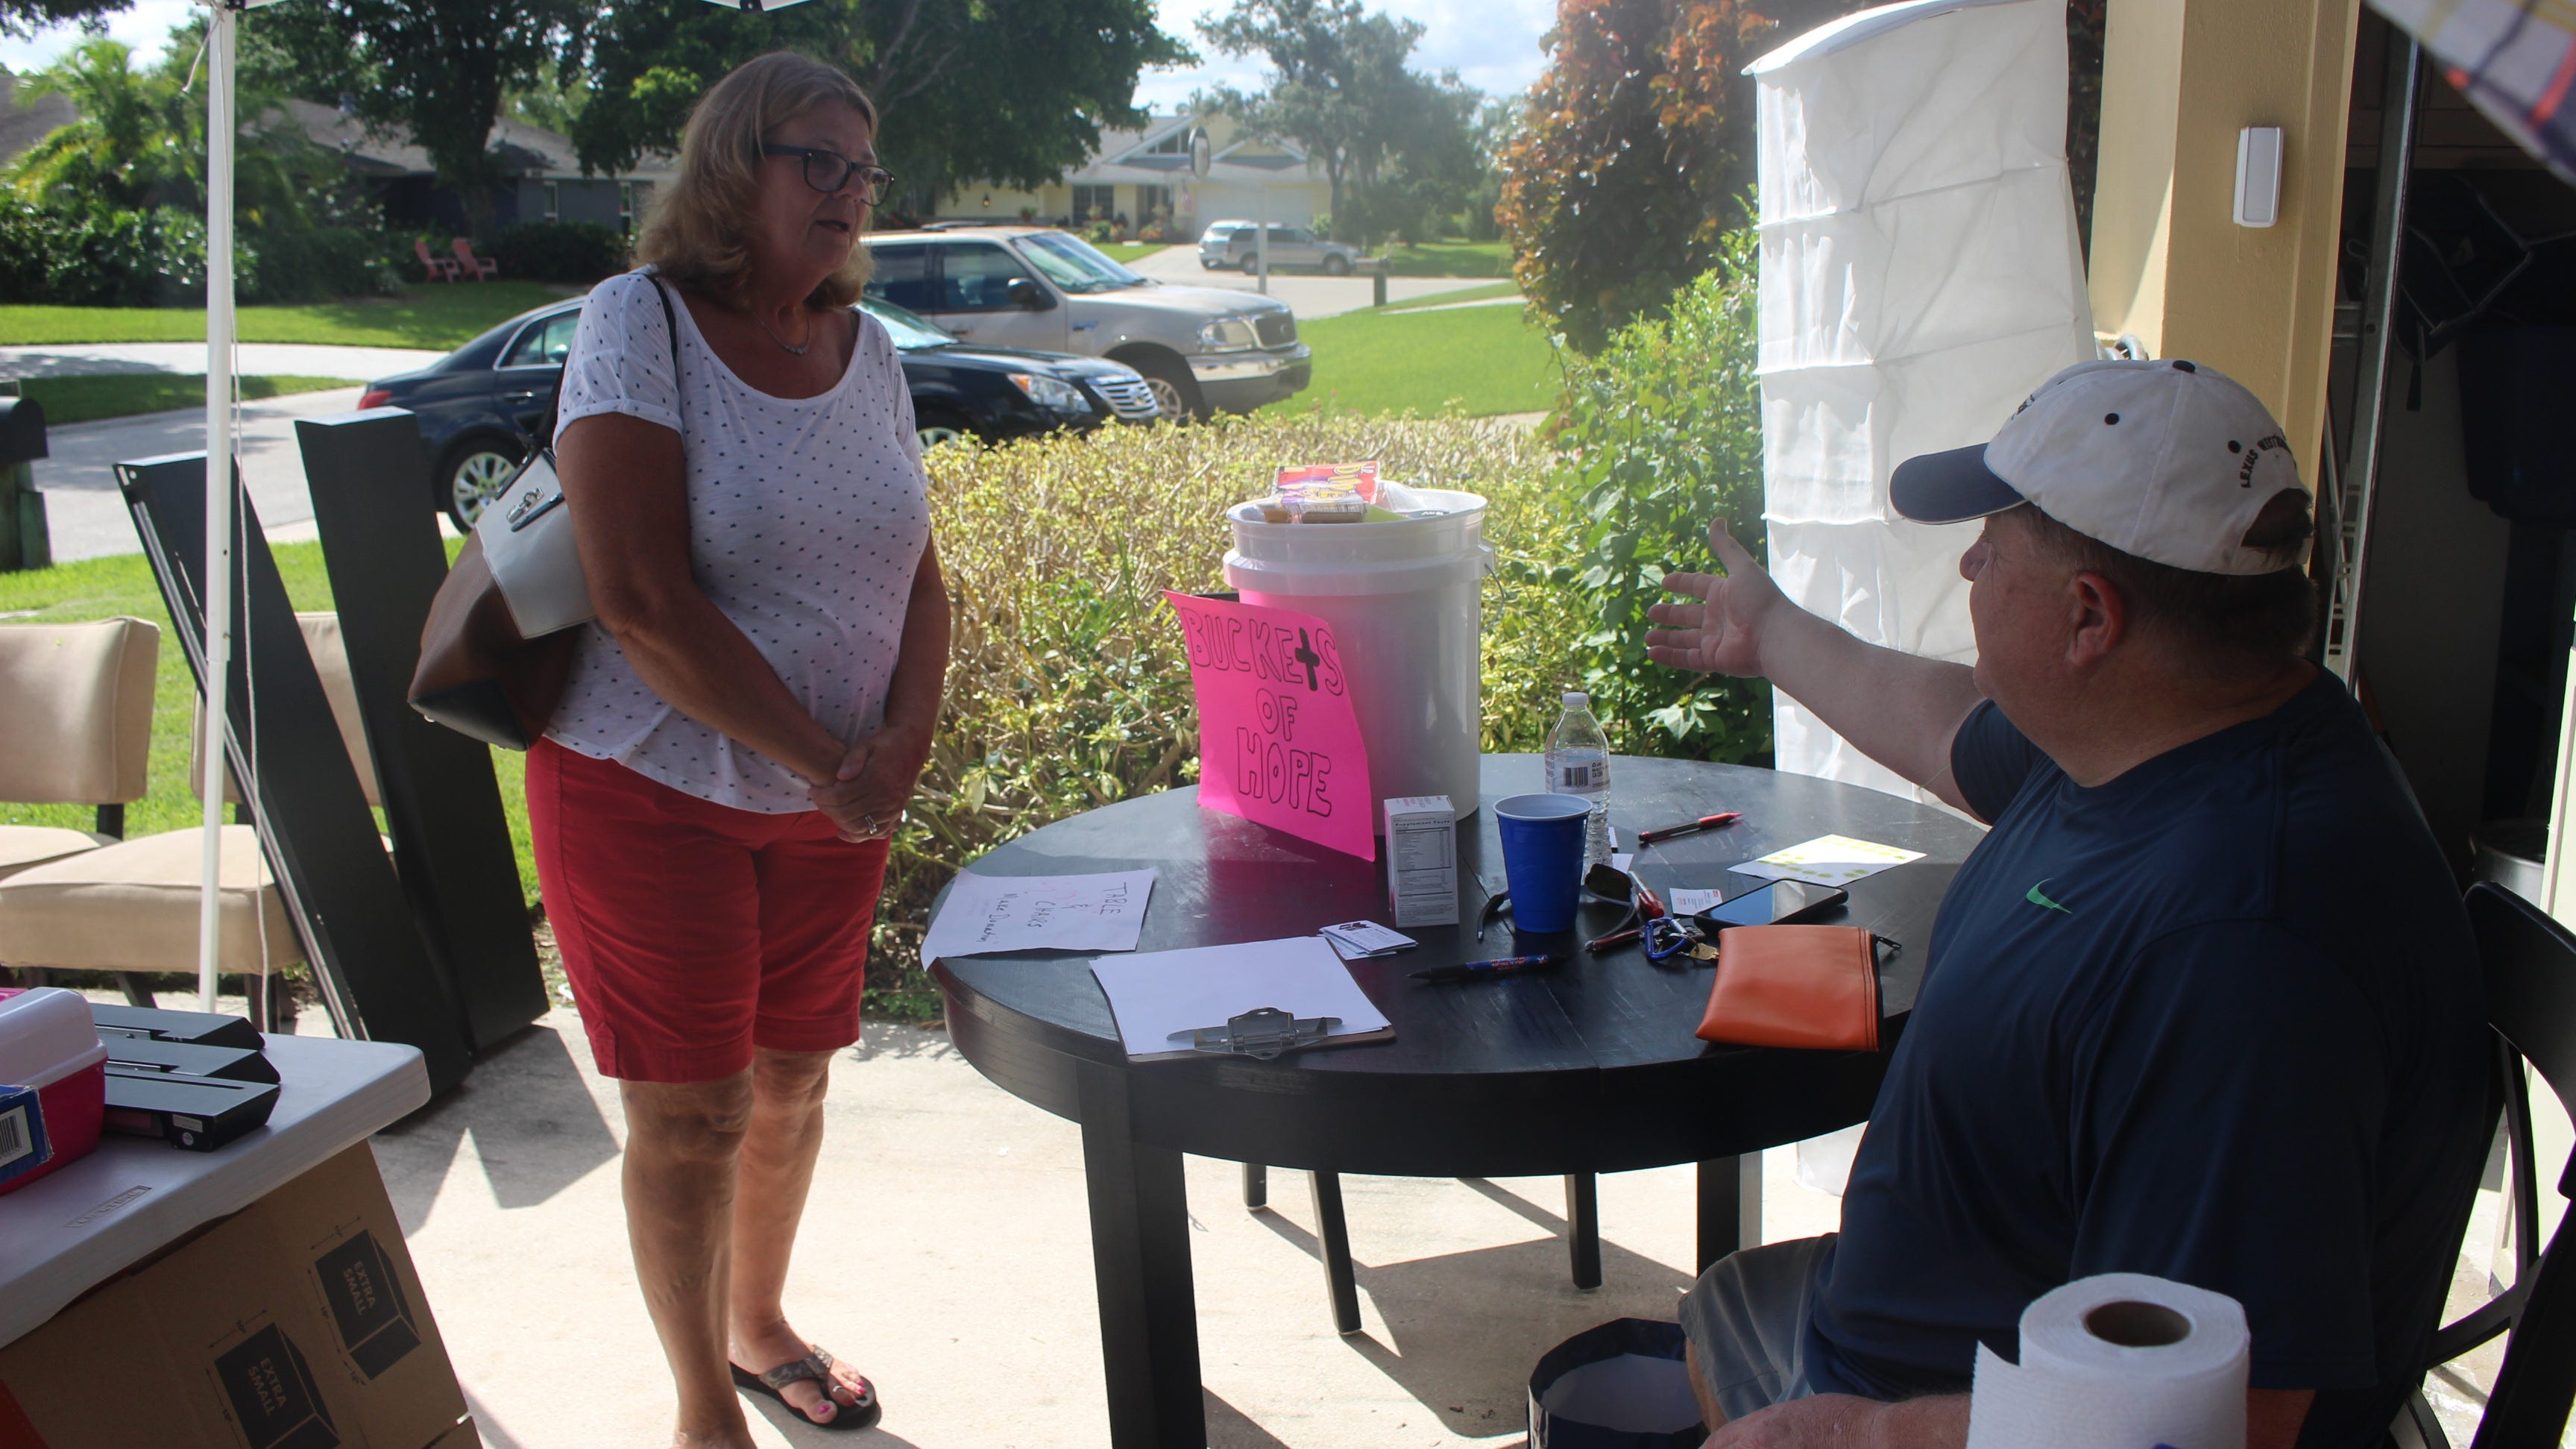 Yard sale used as a fundraiser for 'Buckets of Hope'